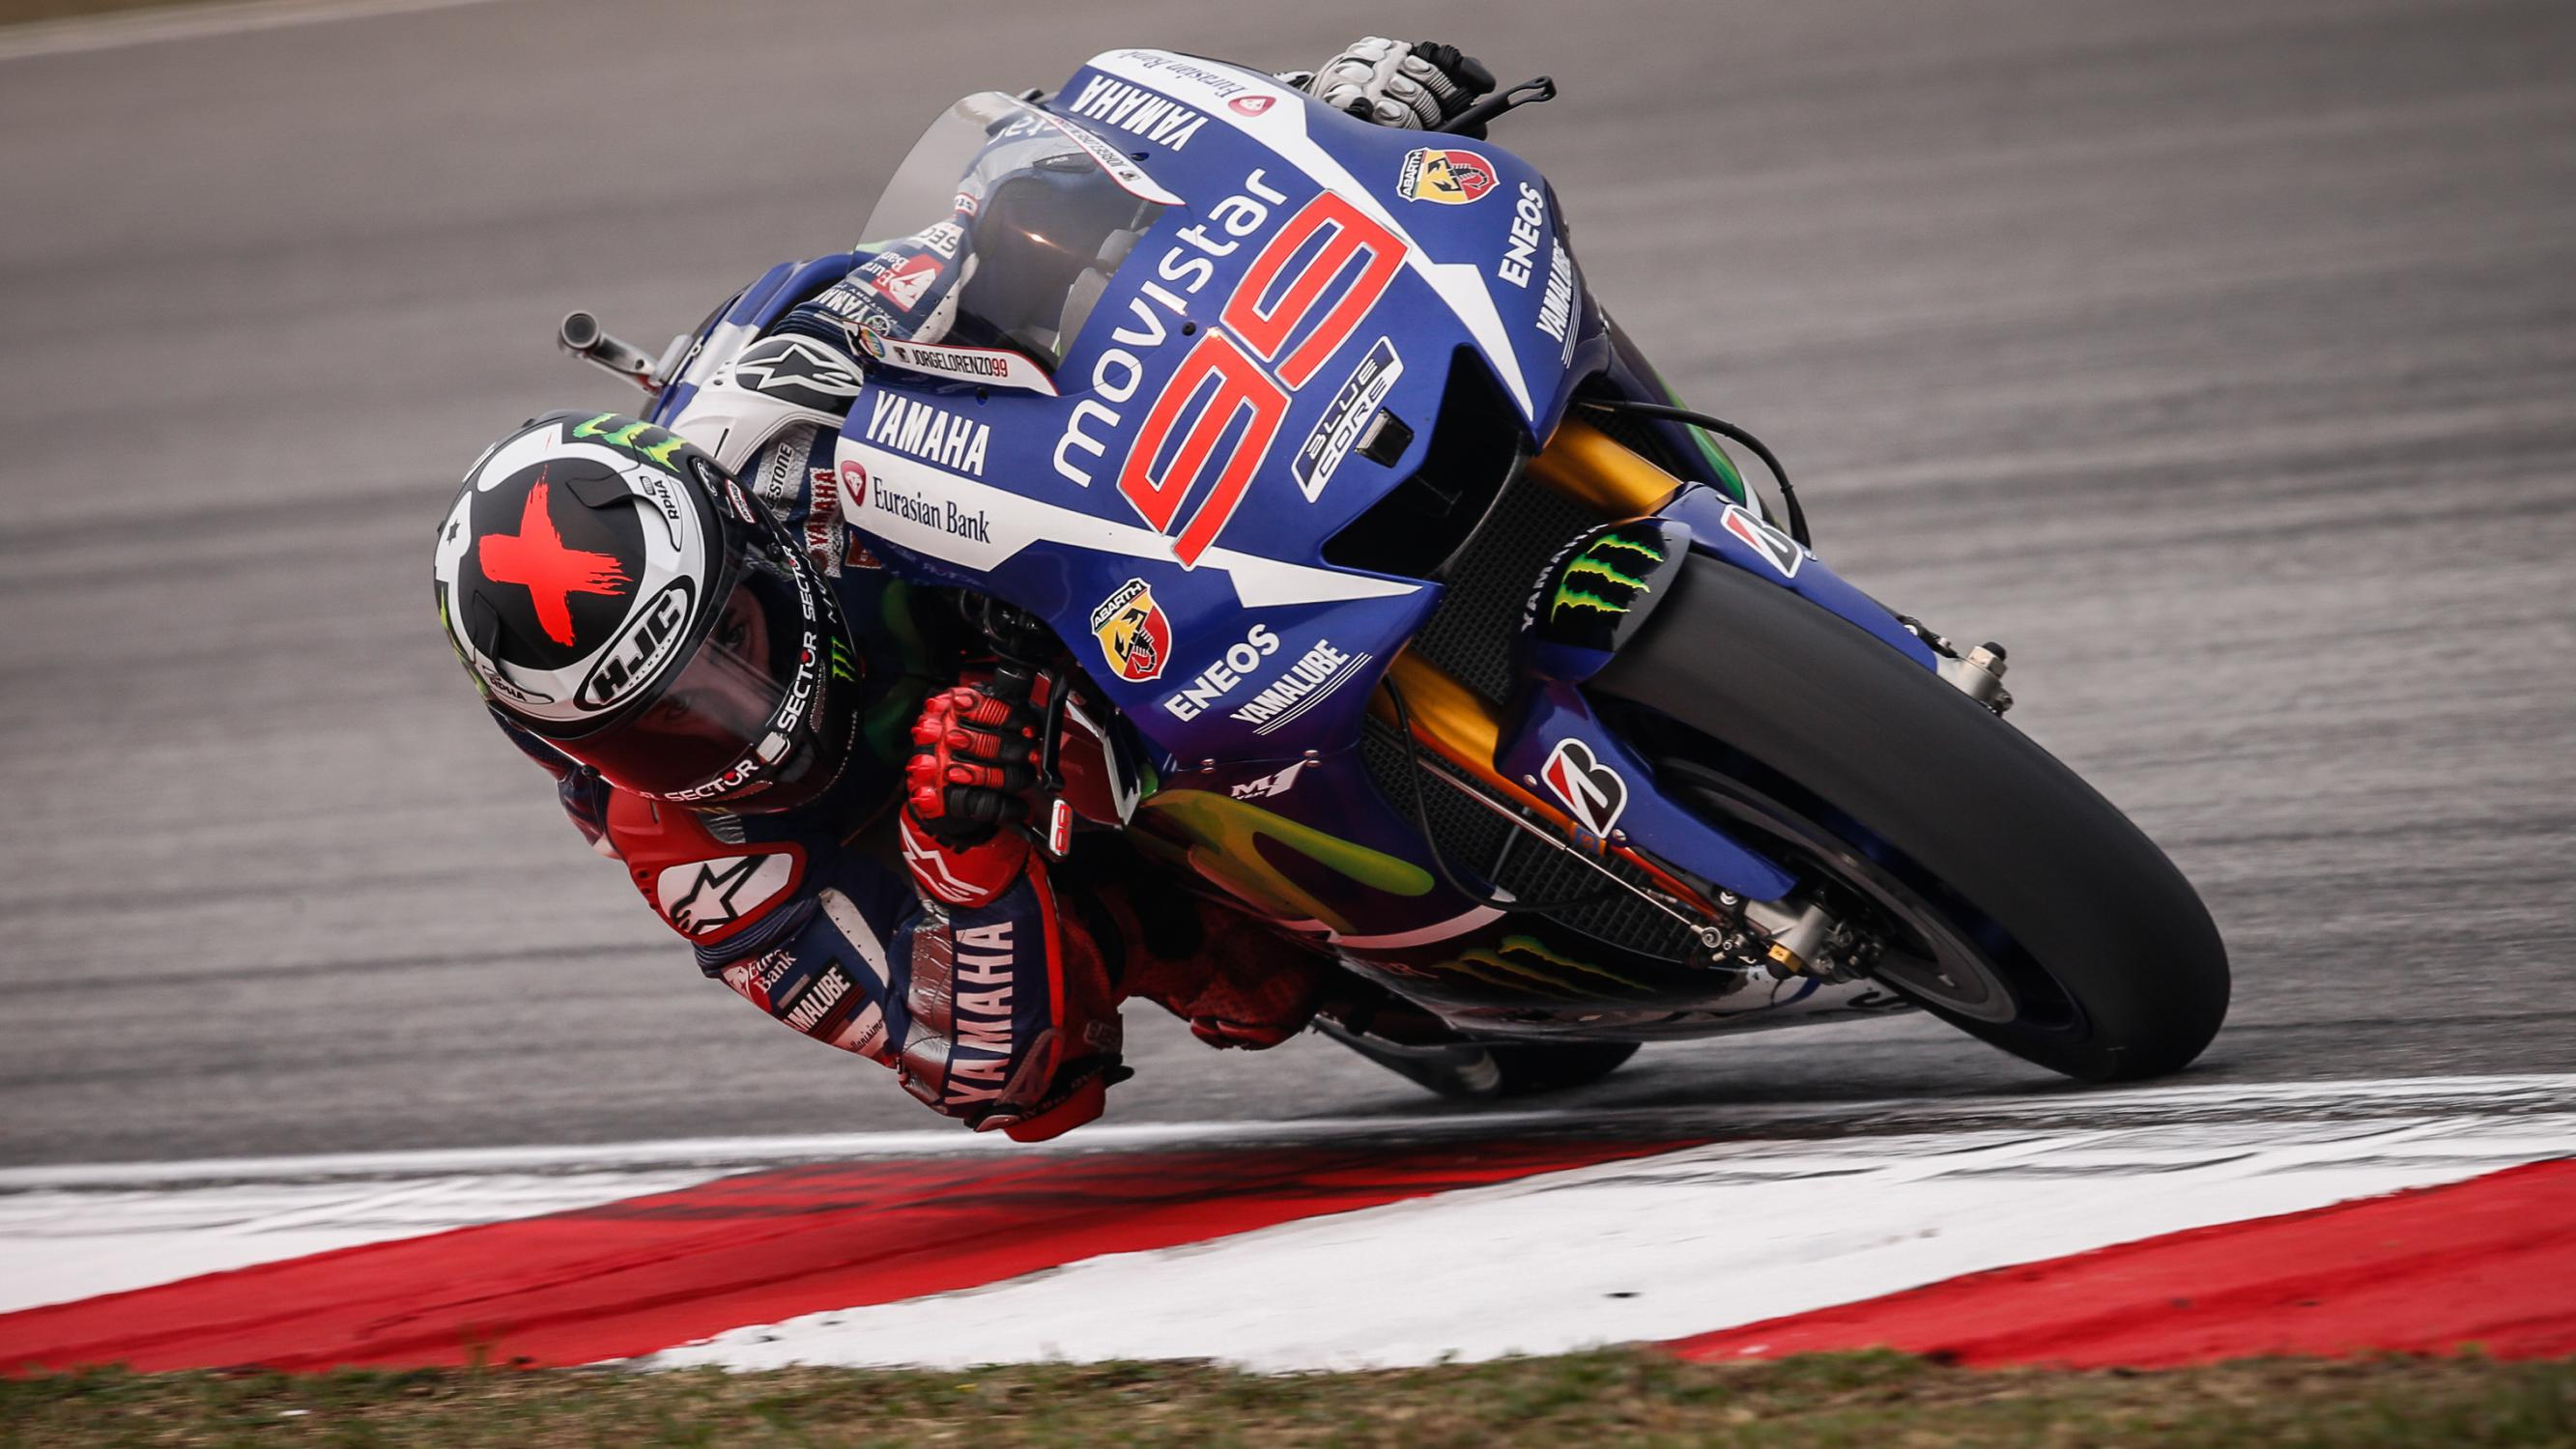 [GP] Sepang - Page 2 99-lorenzo_gp_3840.gallery_full_top_fullscreen